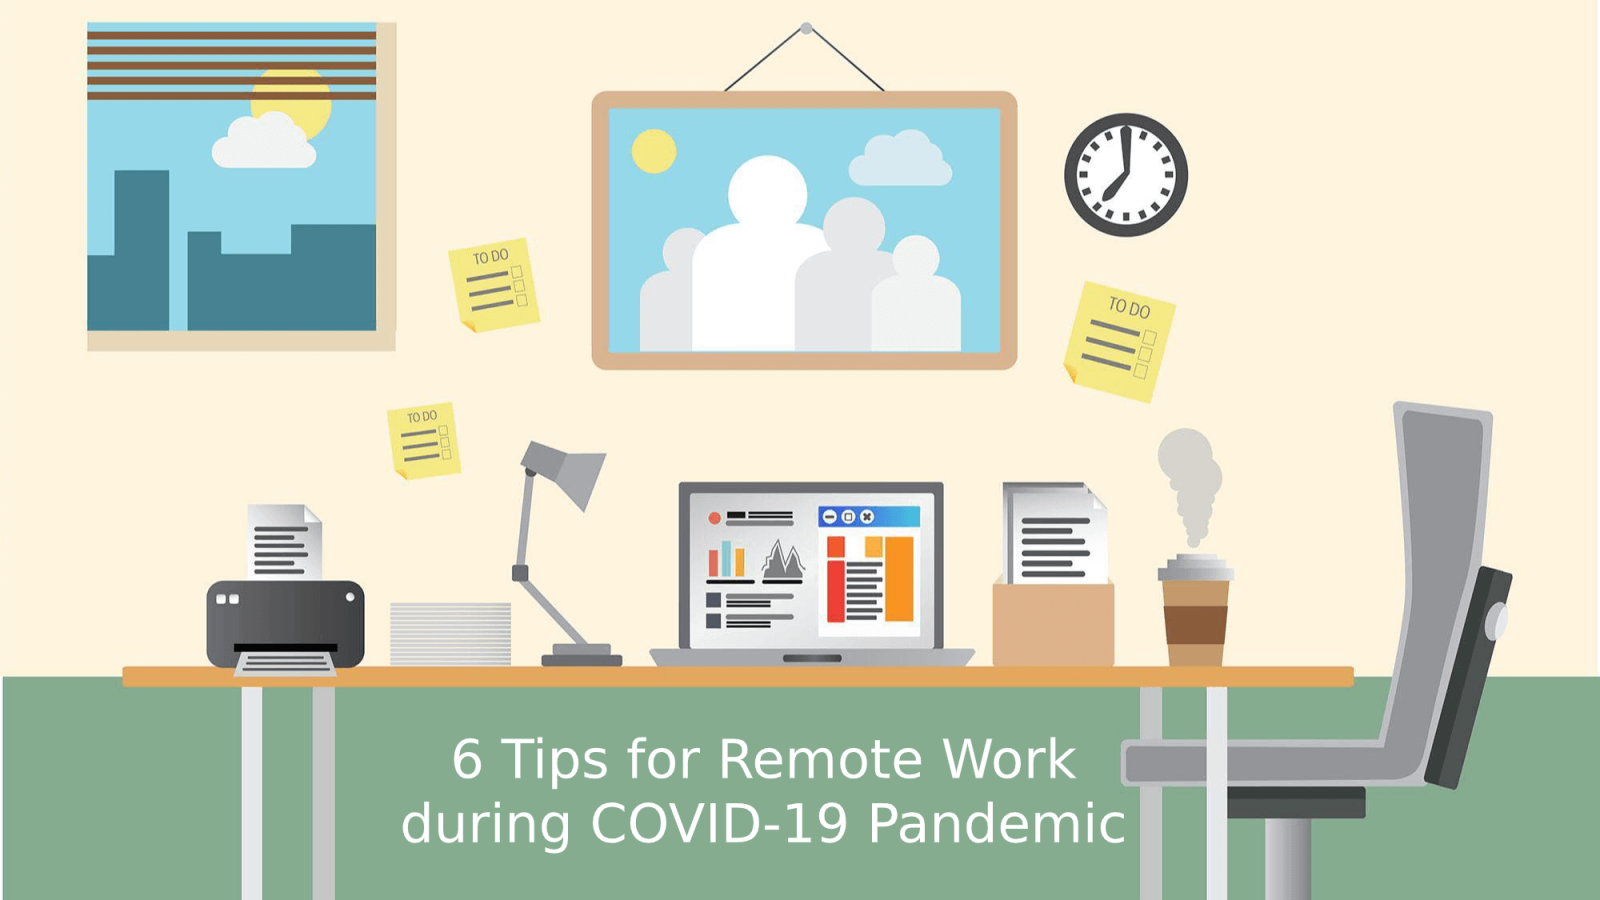 tips for remote work during covid-19